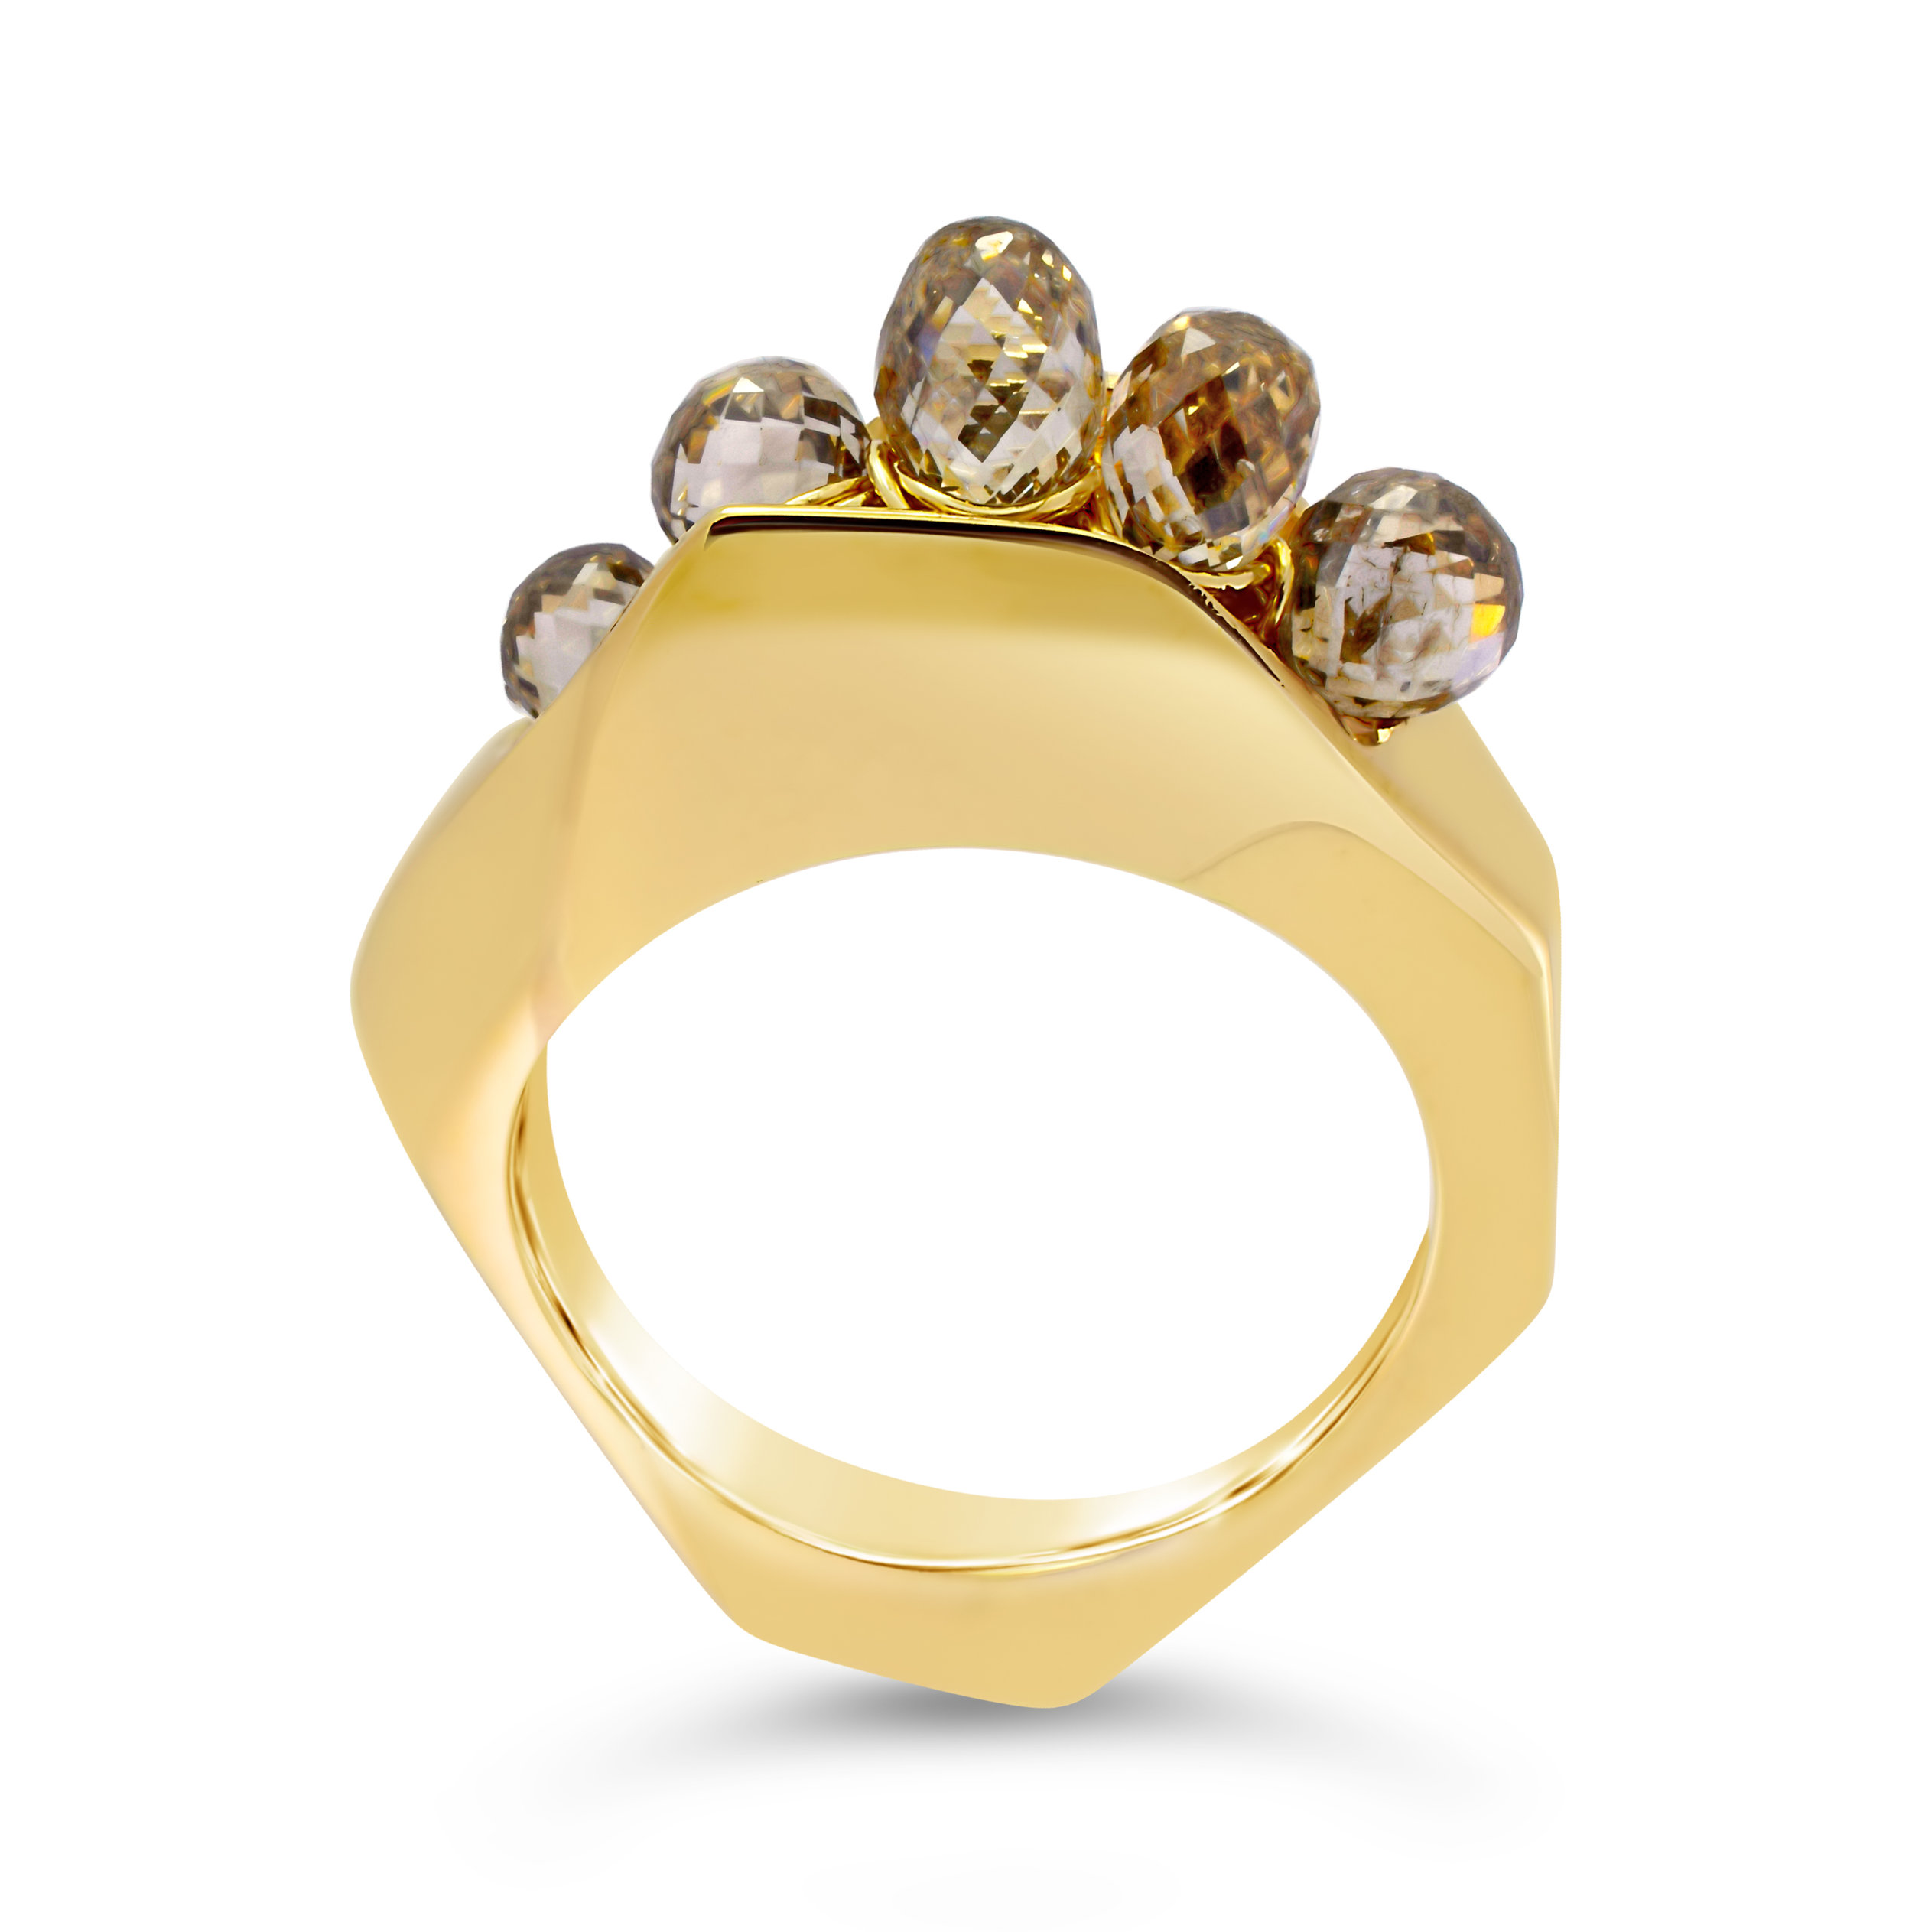 14k gold casted ring with 4 carats of champagne diamonds